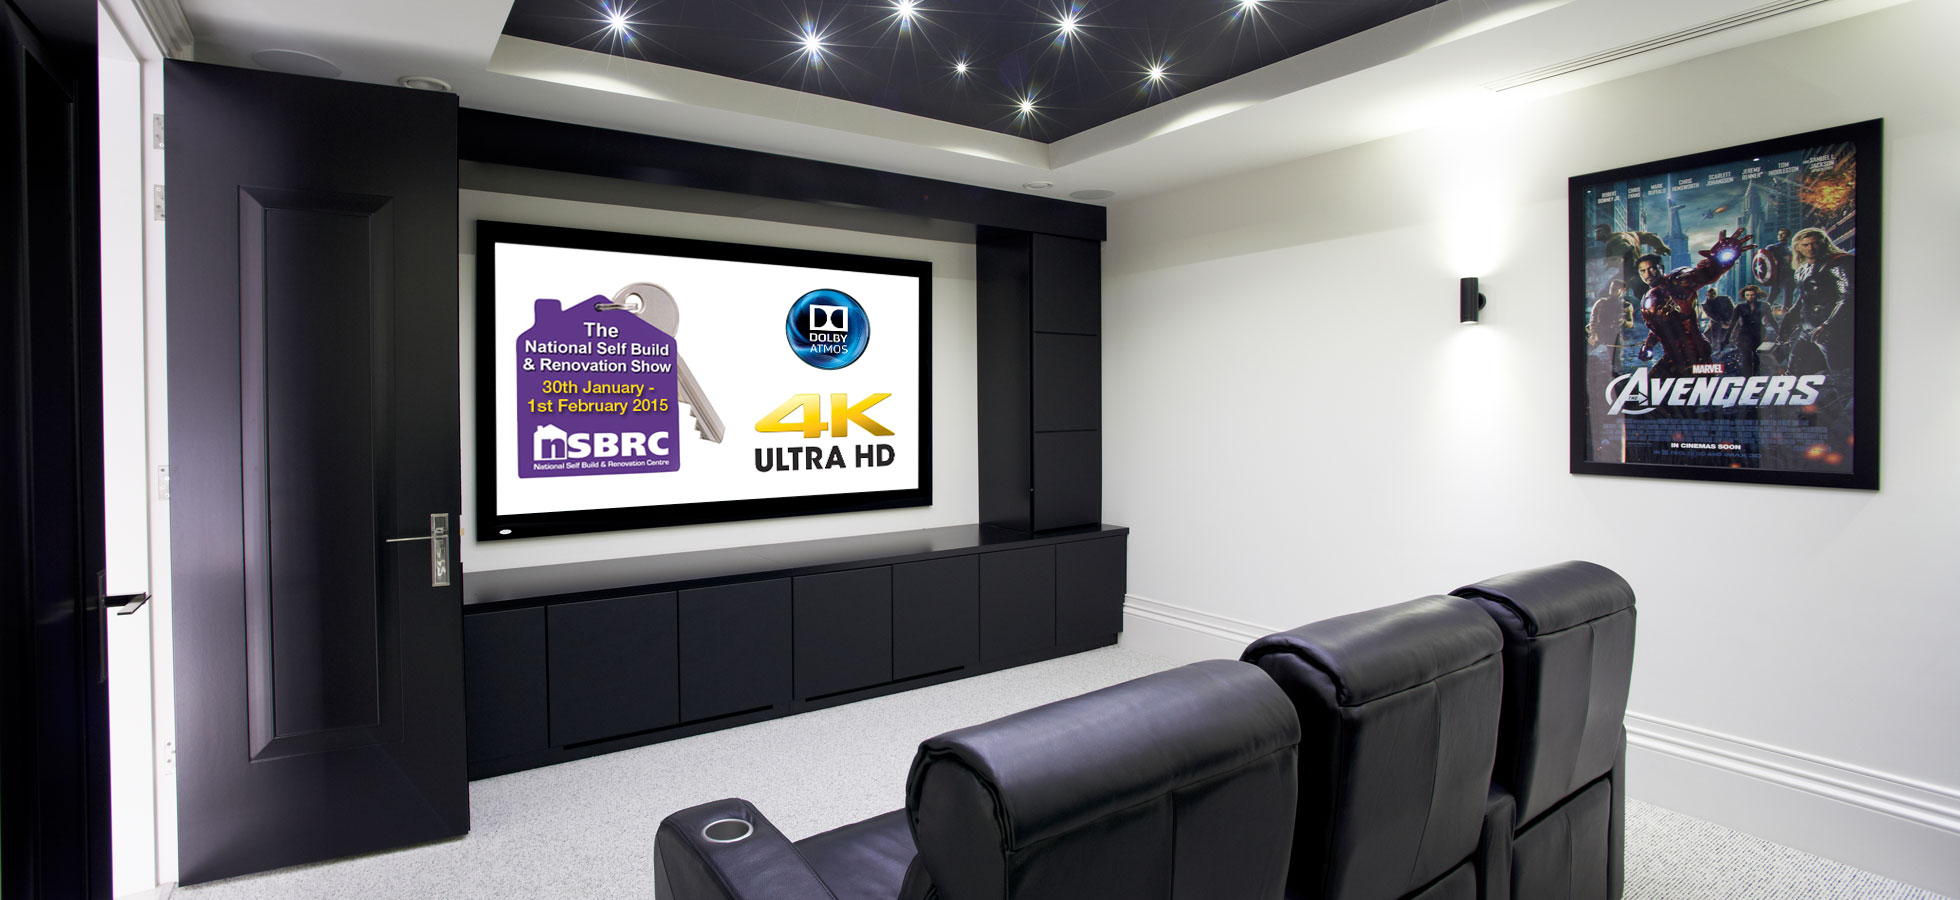 Dolby Vision Uhd 4K Demo - Thereset